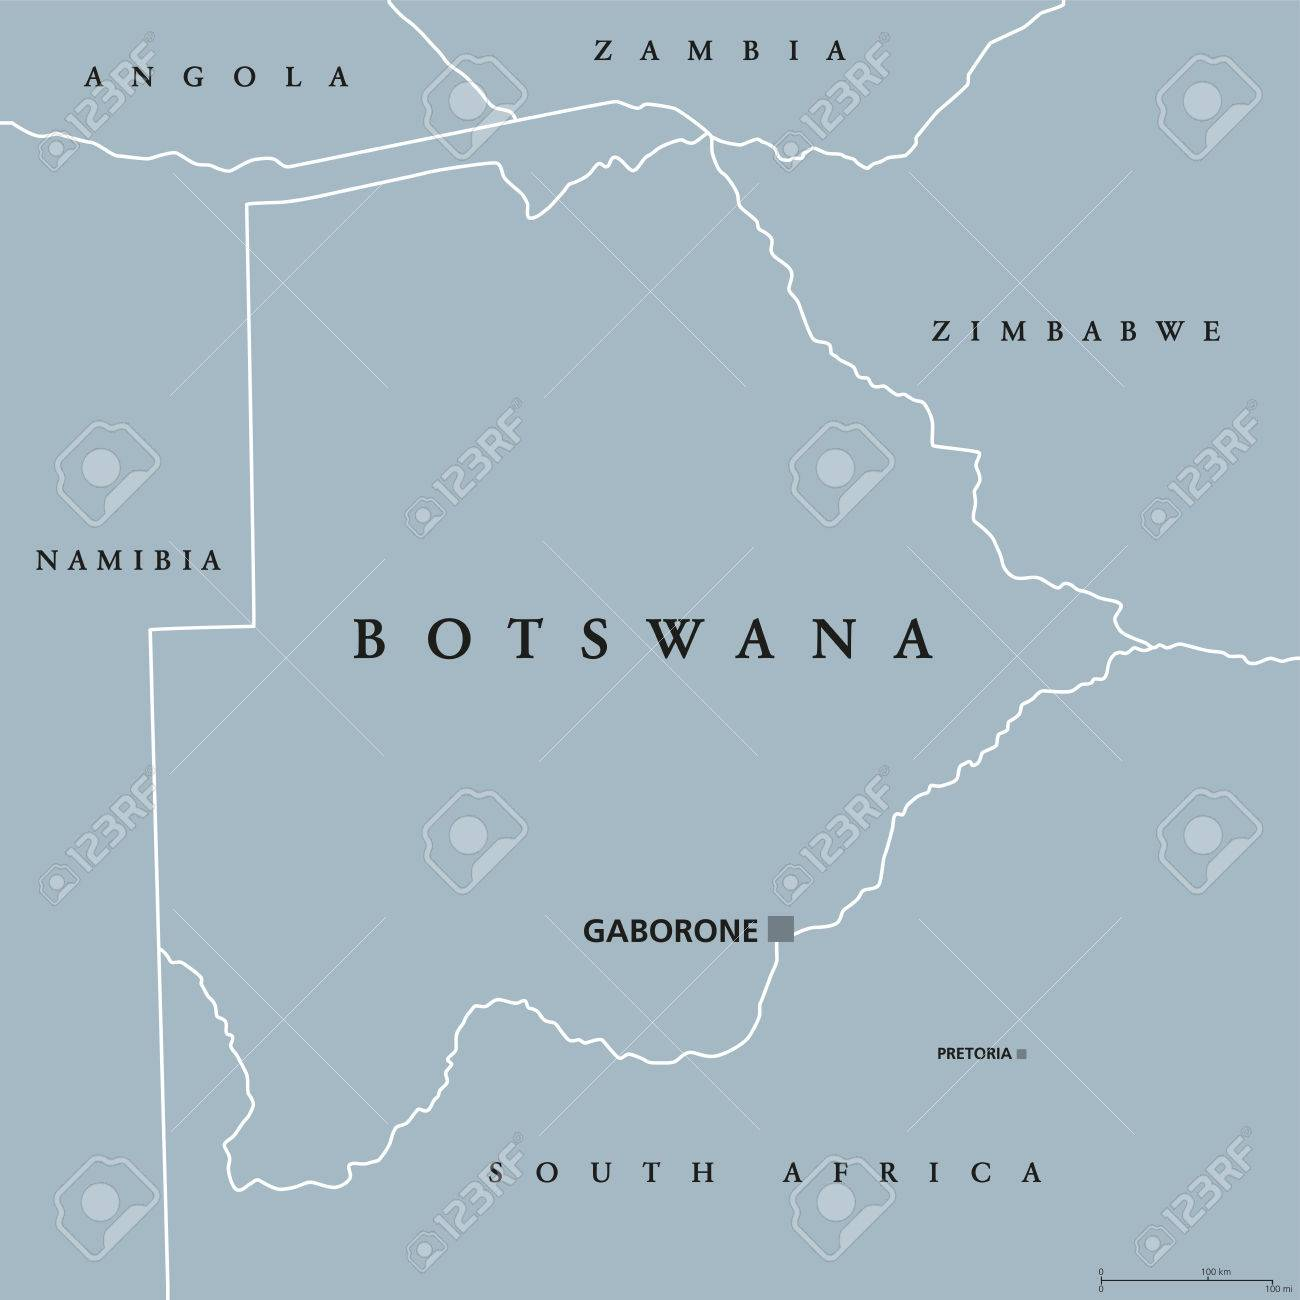 Botswana Political Map.Botswana Political Map With Capital Gaborone And International